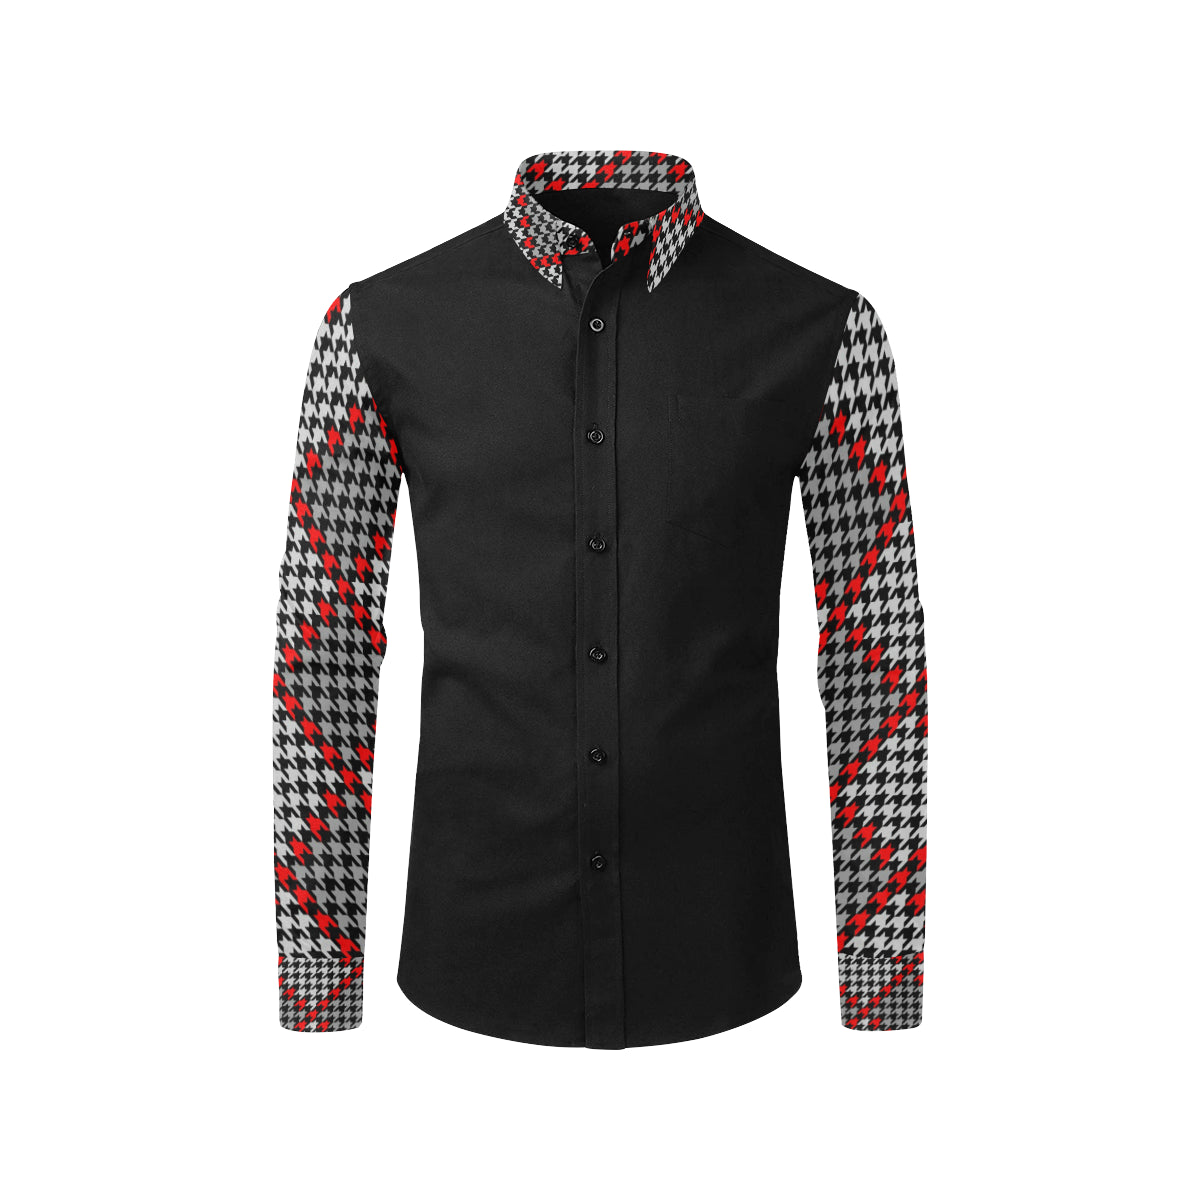 Red Tweed Dress Shirt